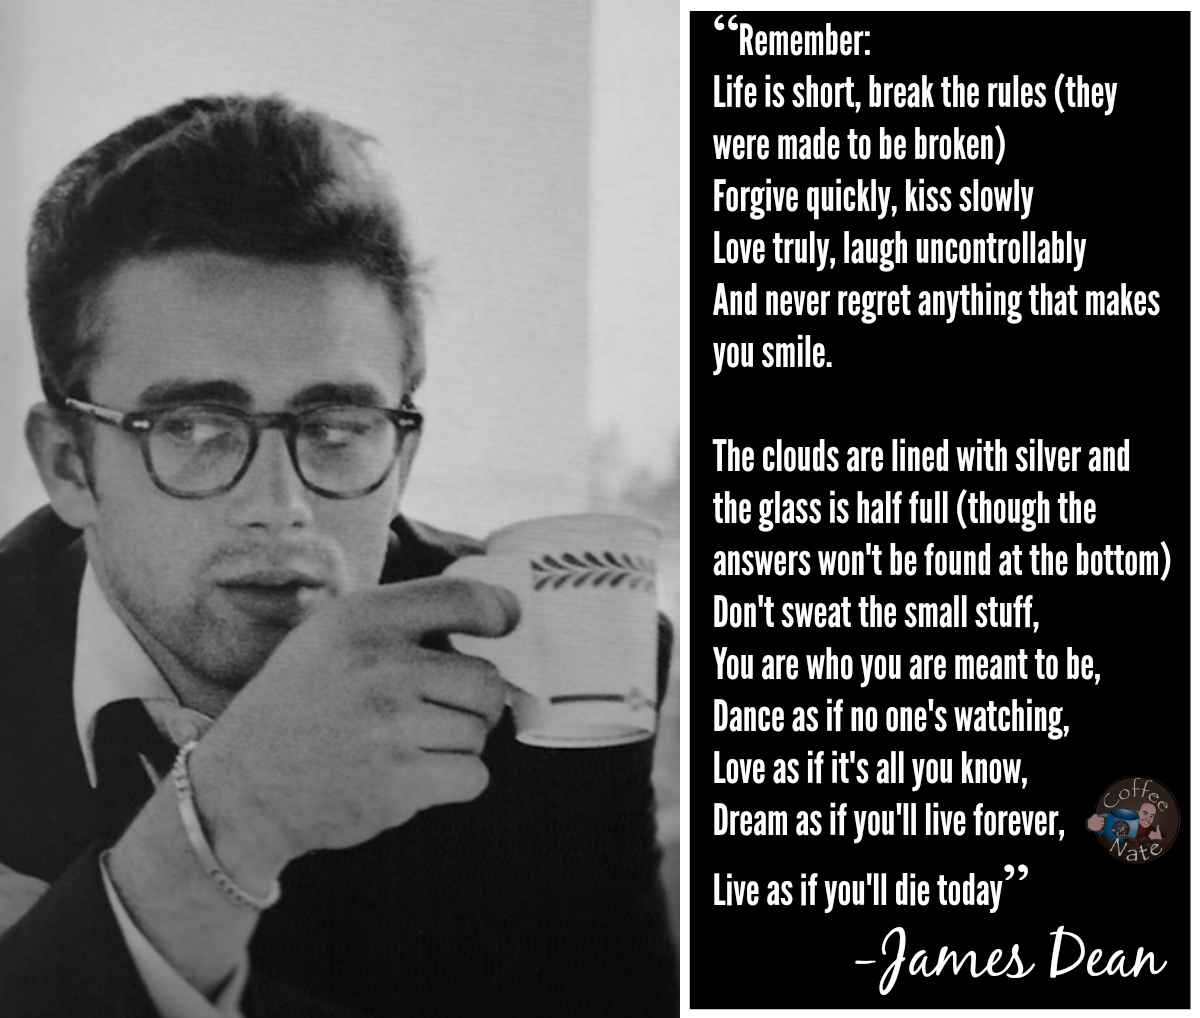 """""""Dream as if you'll live forever, Live as if you'll die today"""" - James Dean"""